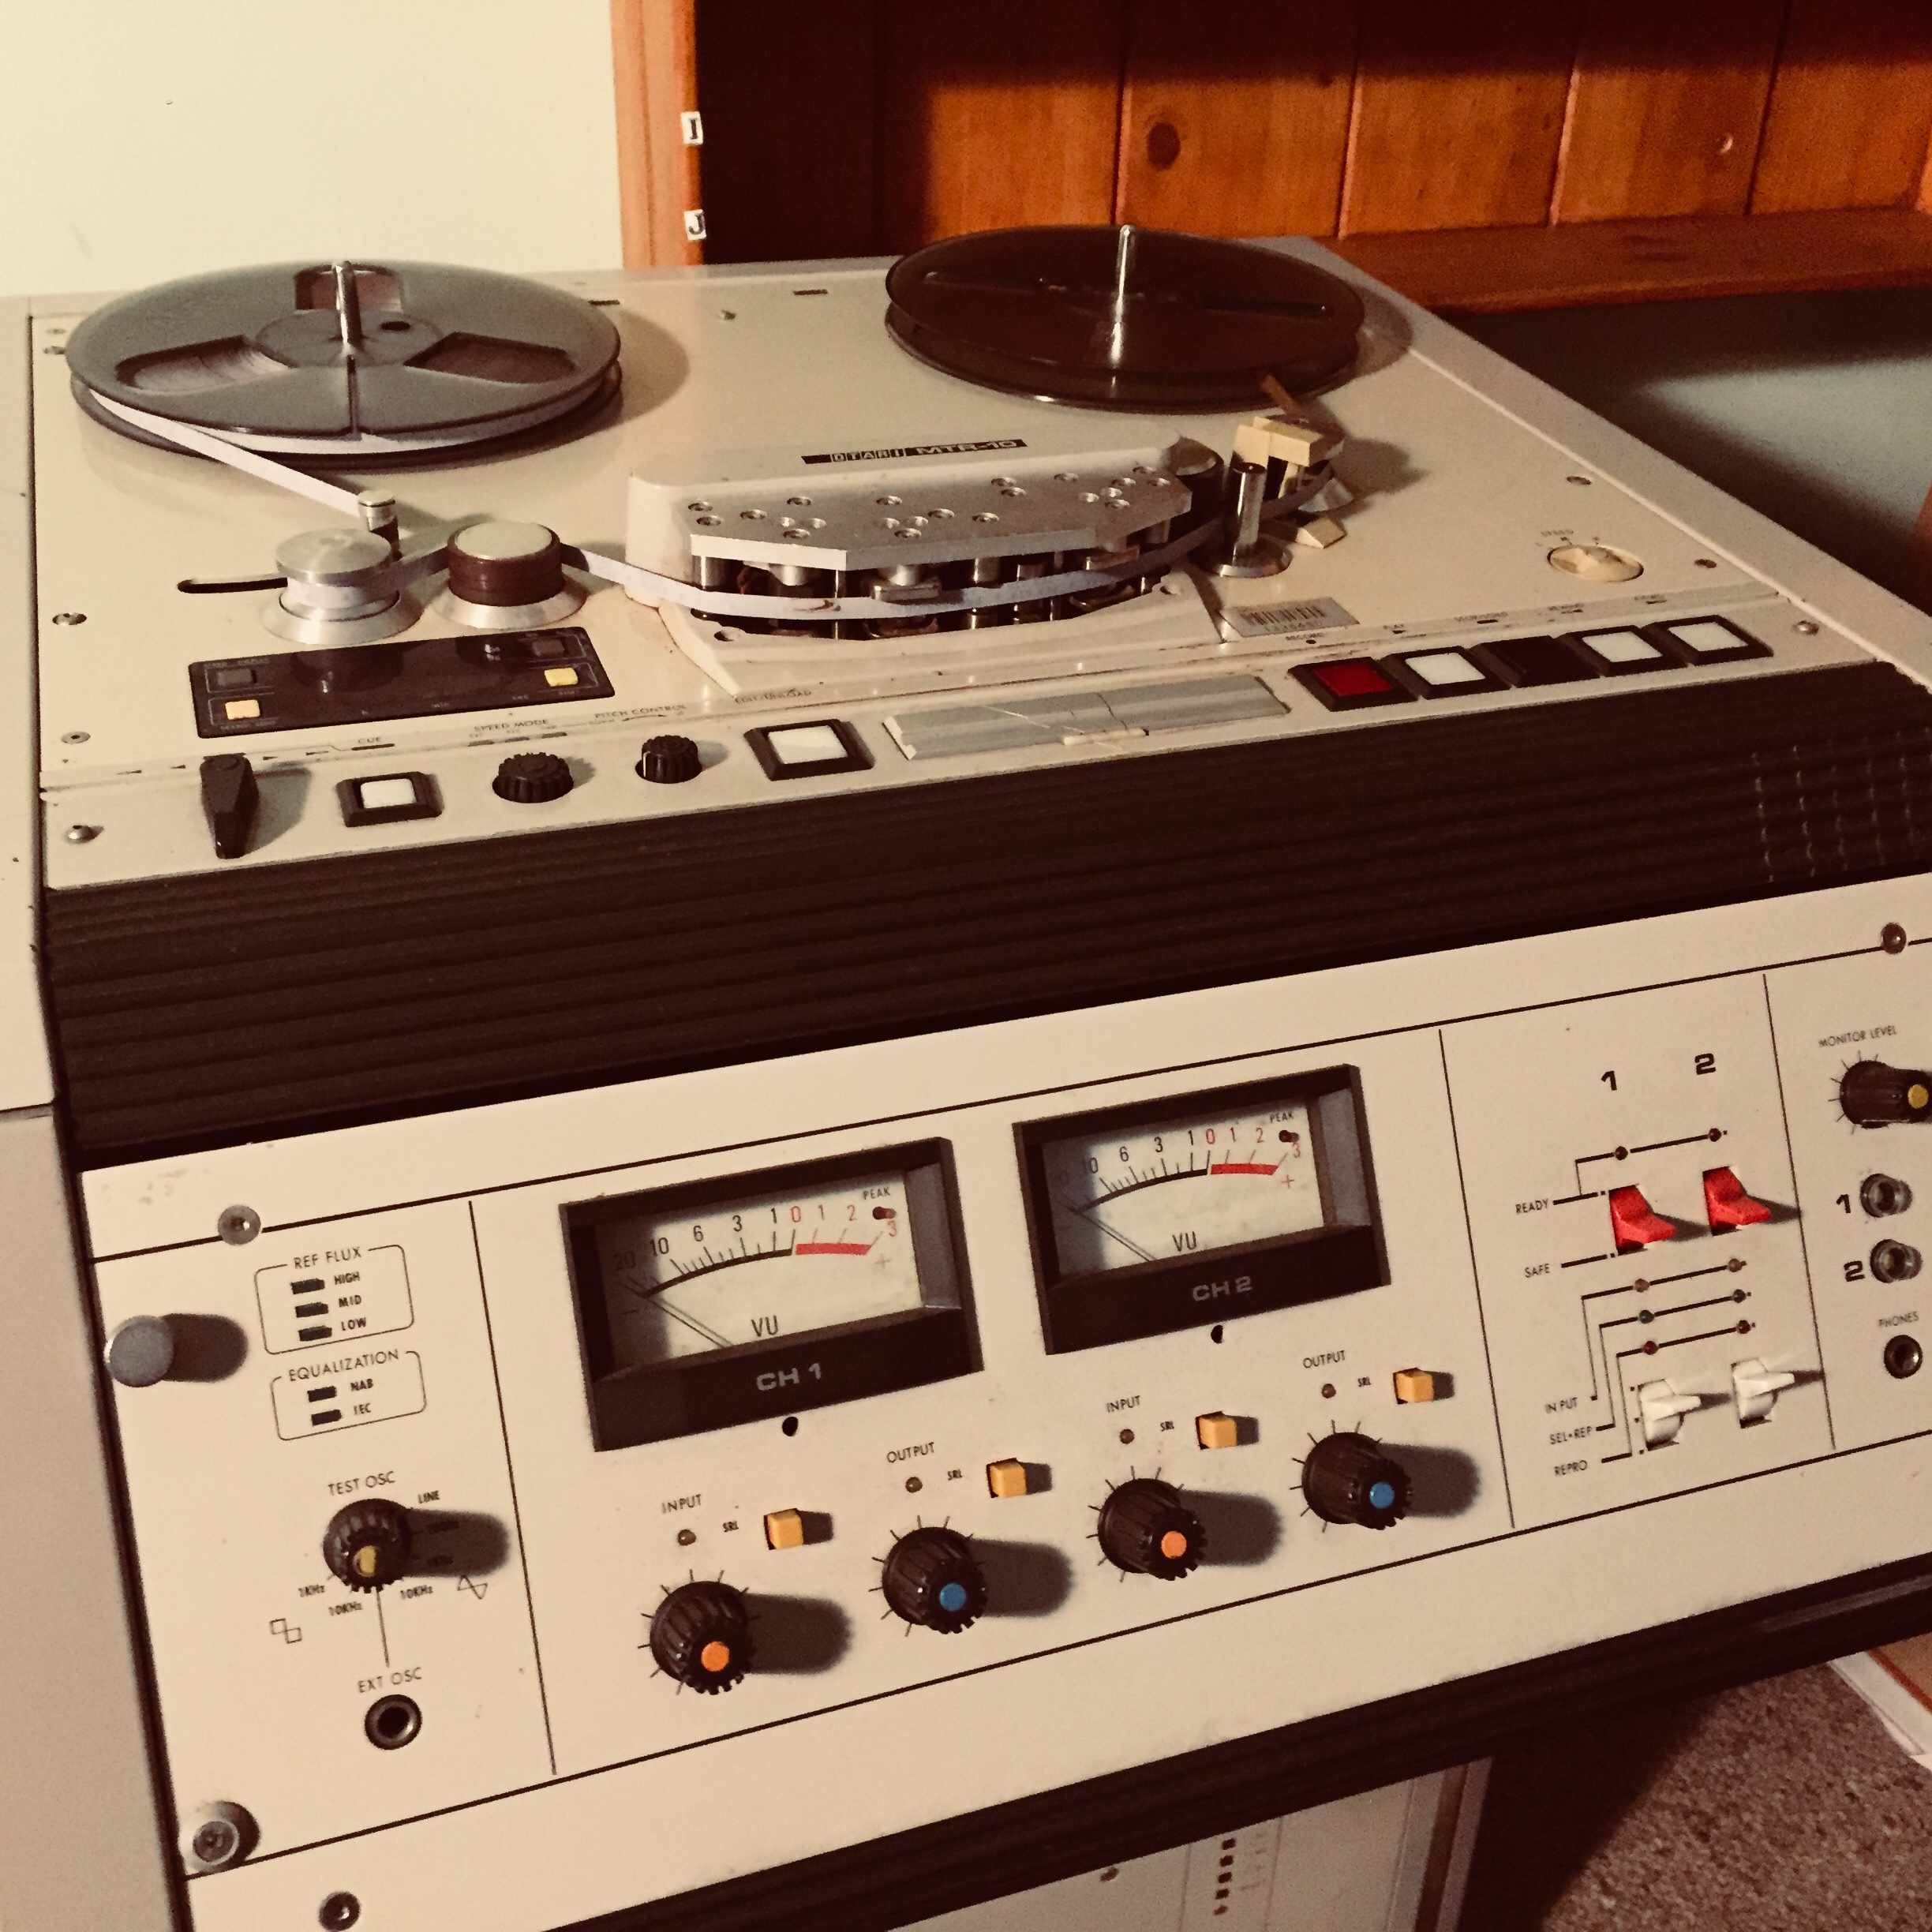 Otari MTR-10 - This is an old ex-ABC unit that I picked up nearly 10 years ago and since then it has been a work horse. In the past I used to mix down onto this machine, but I find it's real enduring strength is as a tape echo. I mean, it just sounds incredible.So during mix time, I will use this to slam tracks down on to for some of that tape sound, then often use it in real time as an effects send from the console for that aforementioned, magical tape echo. I really went crazy with this when mixing Bliss Release by Cloud Control and Crystal Theatre by Belles Will Ring.